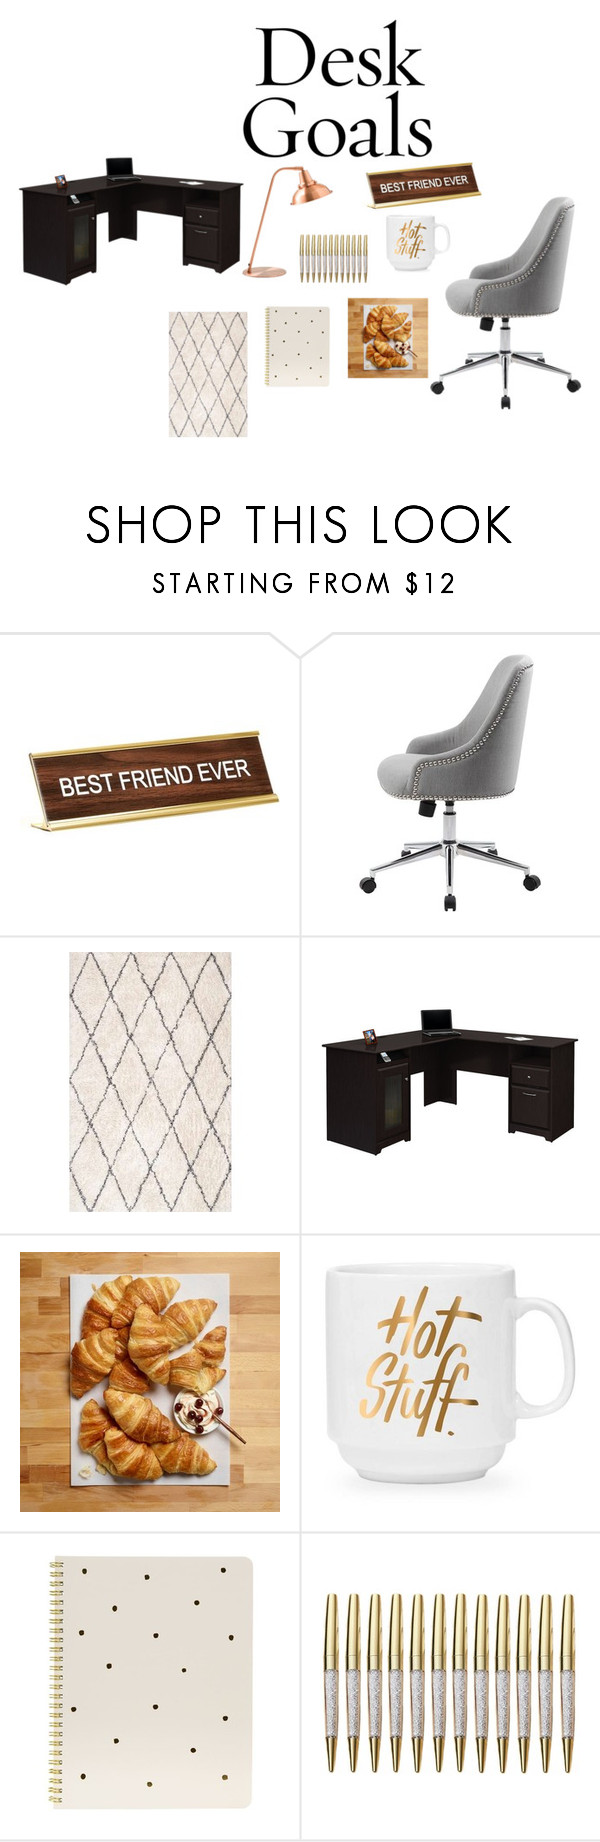 """""""My Personal Desk"""" by shekb ❤ liked on Polyvore featuring interior, interiors, interior design, home, home decor, interior decorating, He Said, She Said, Bush Furniture and Sugar Paper"""